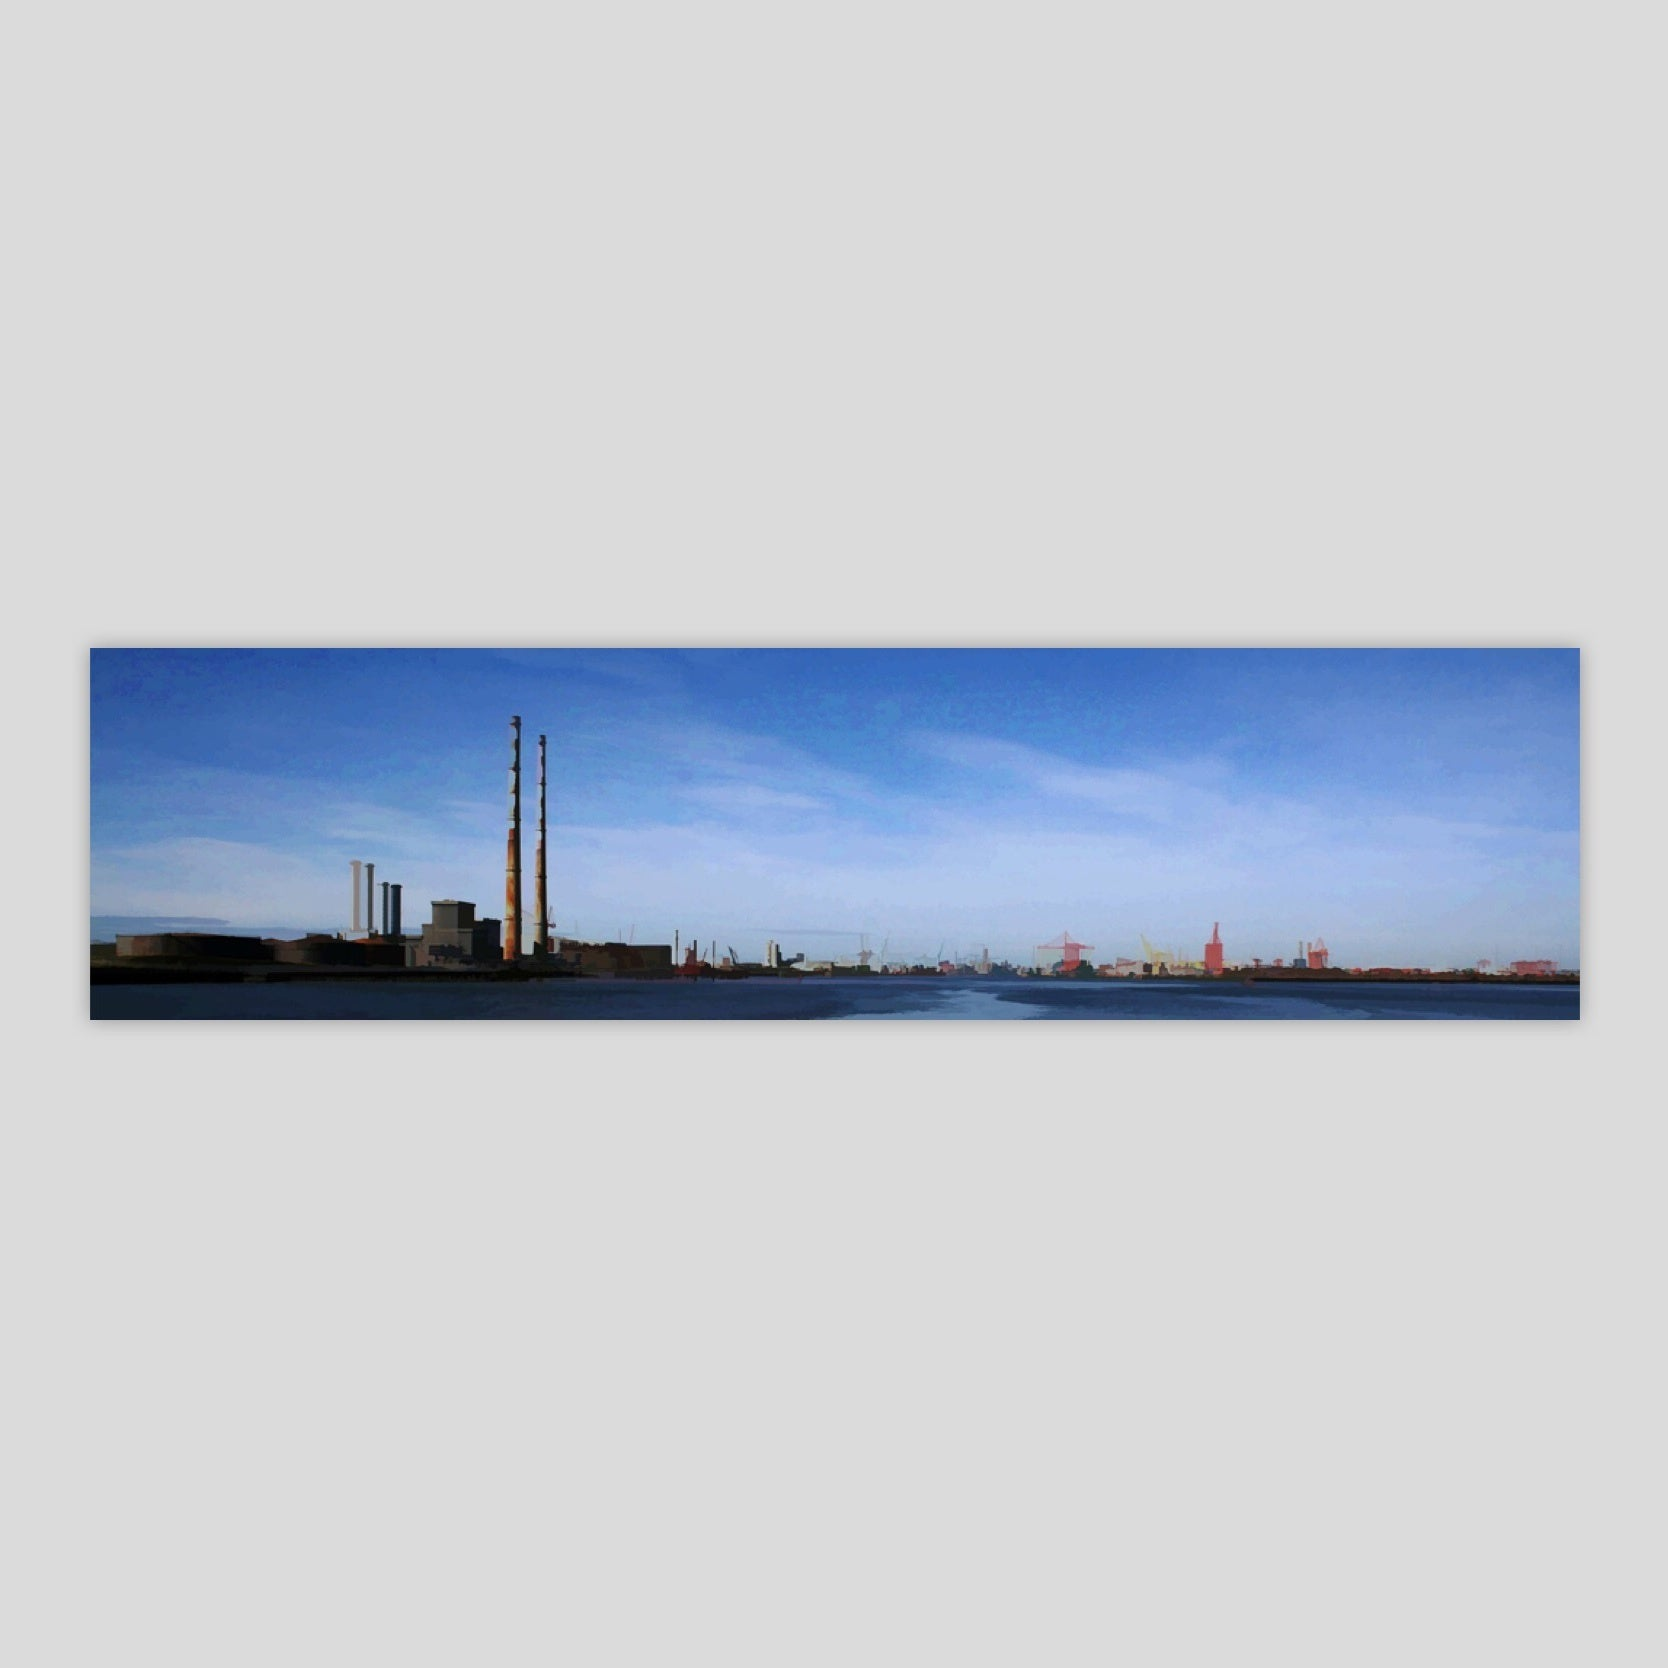 Dublin Port from Poolbeg 2 (3430P-M4)